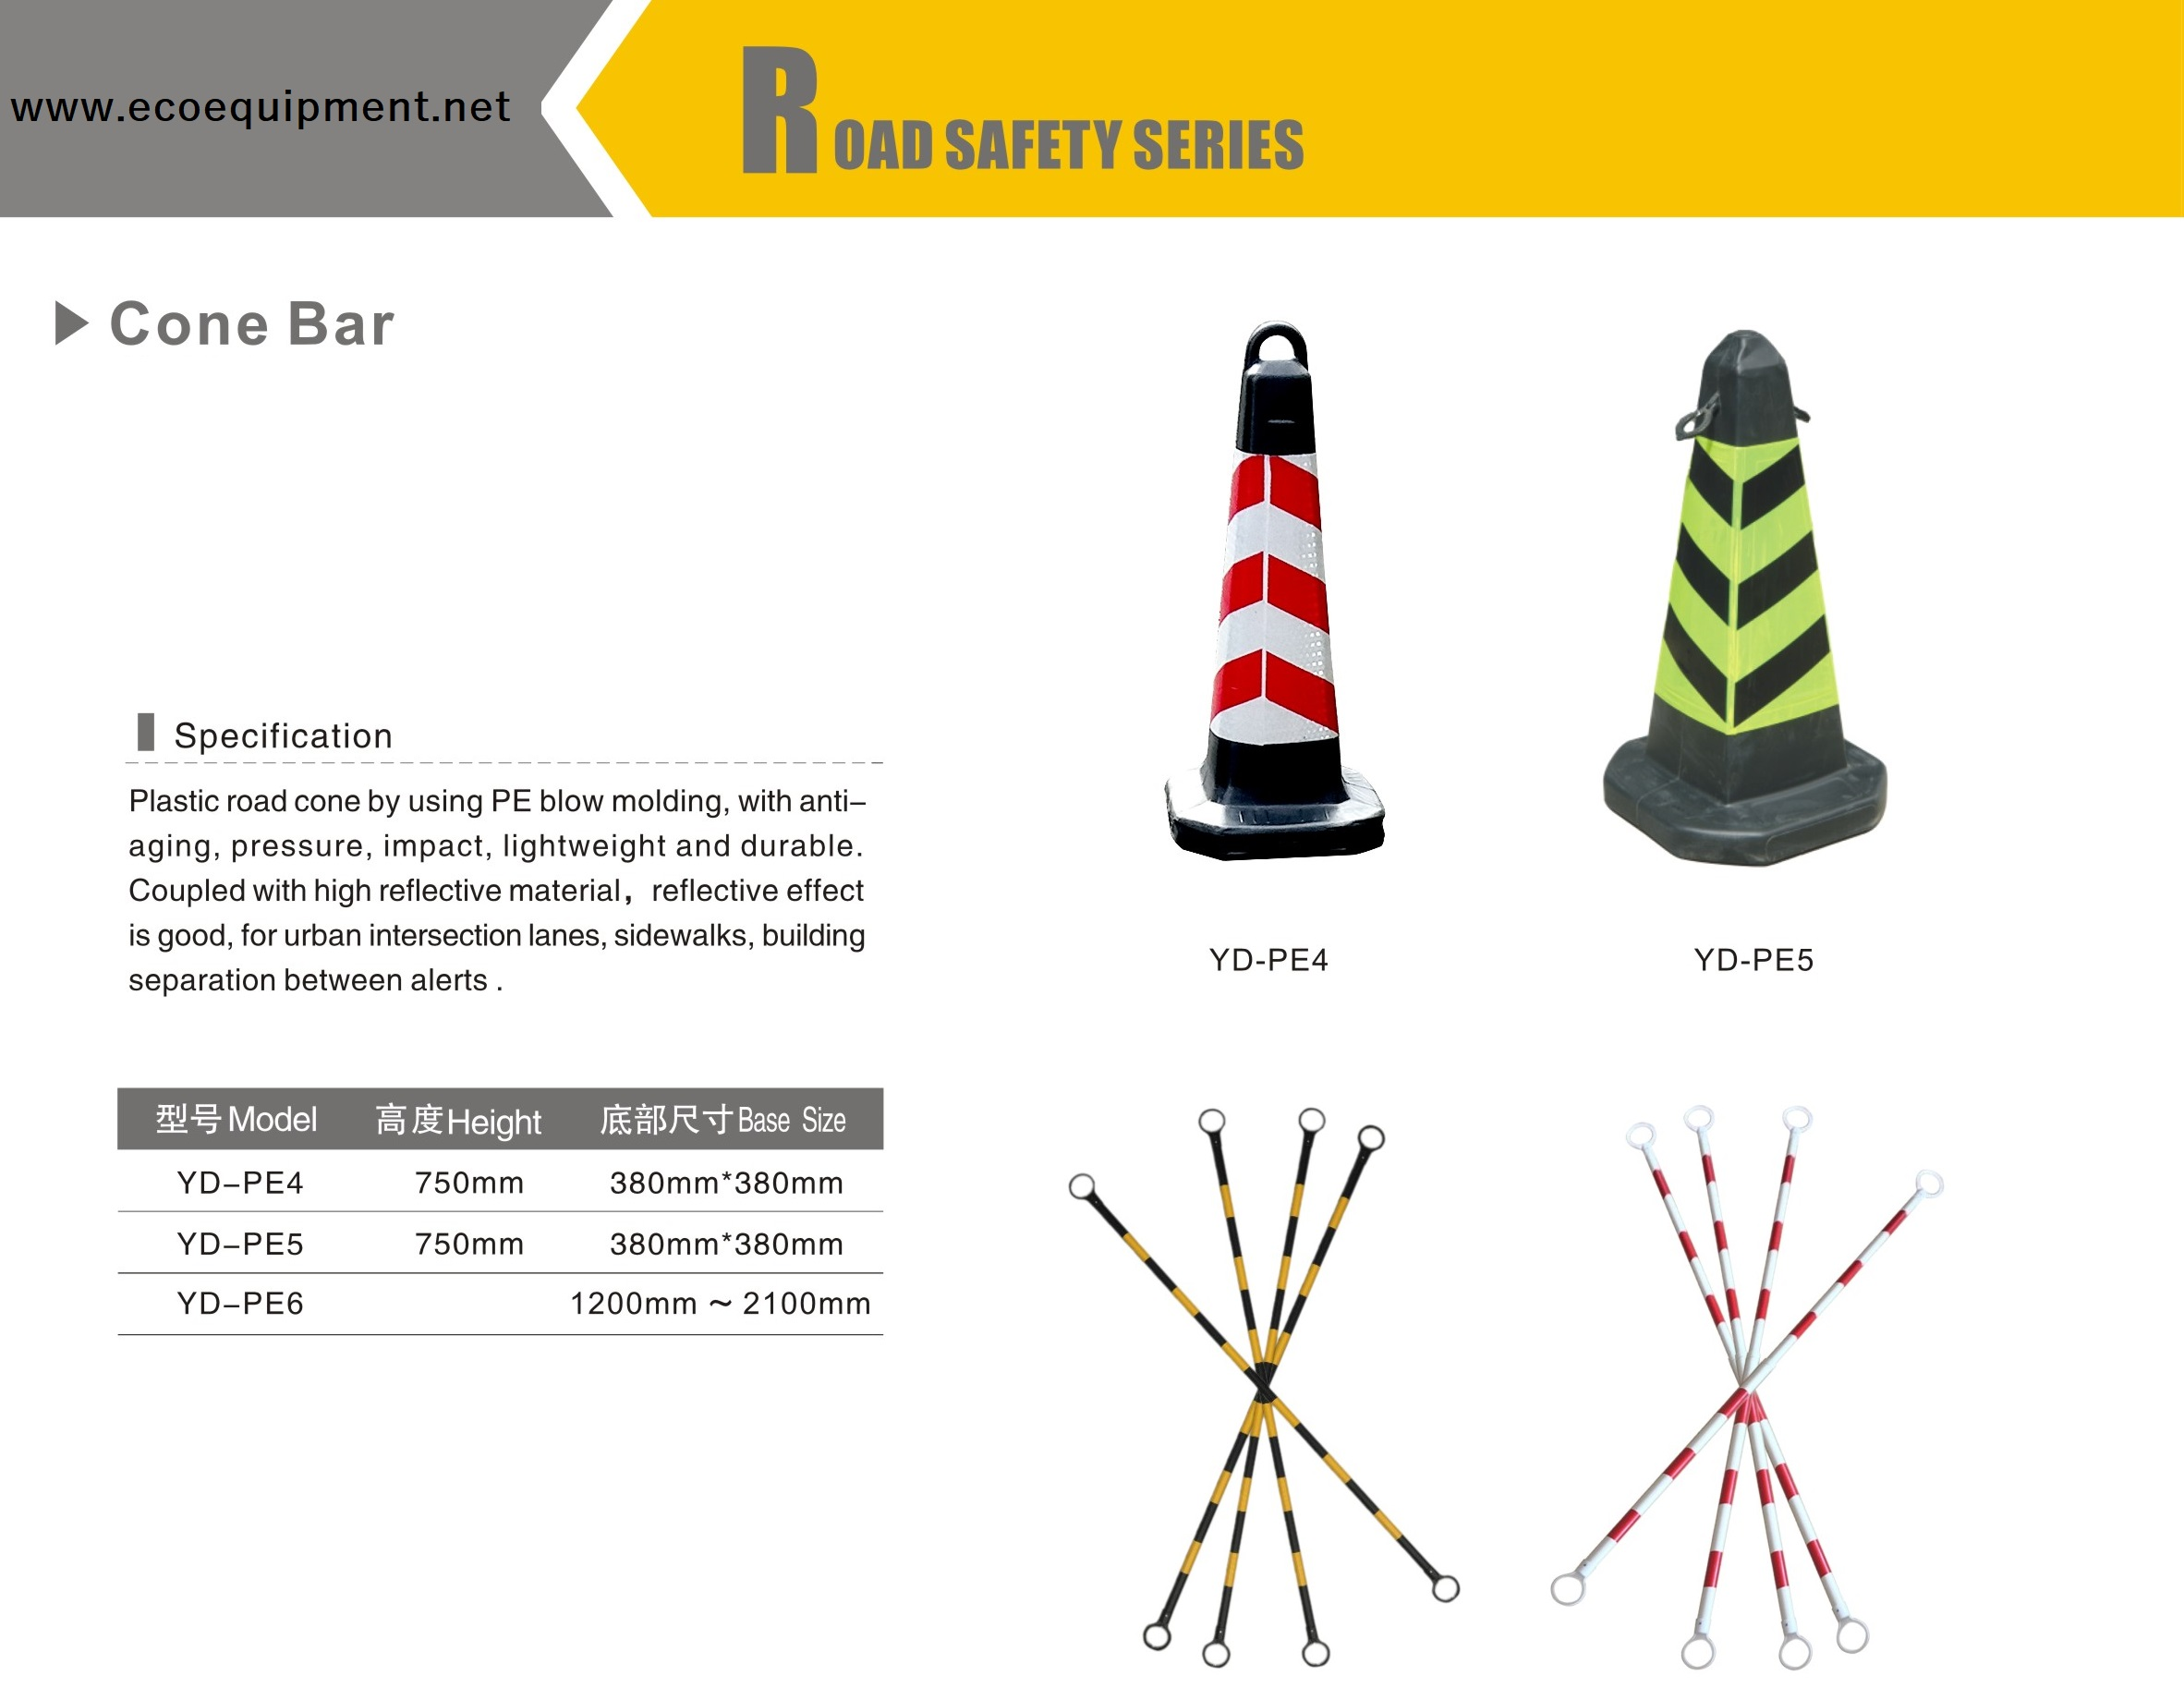 fire engines diagram traffic cone online wiring diagram  fire engines diagram traffic cone 16 qio savic family de \\u2022fire engines diagram traffic cone